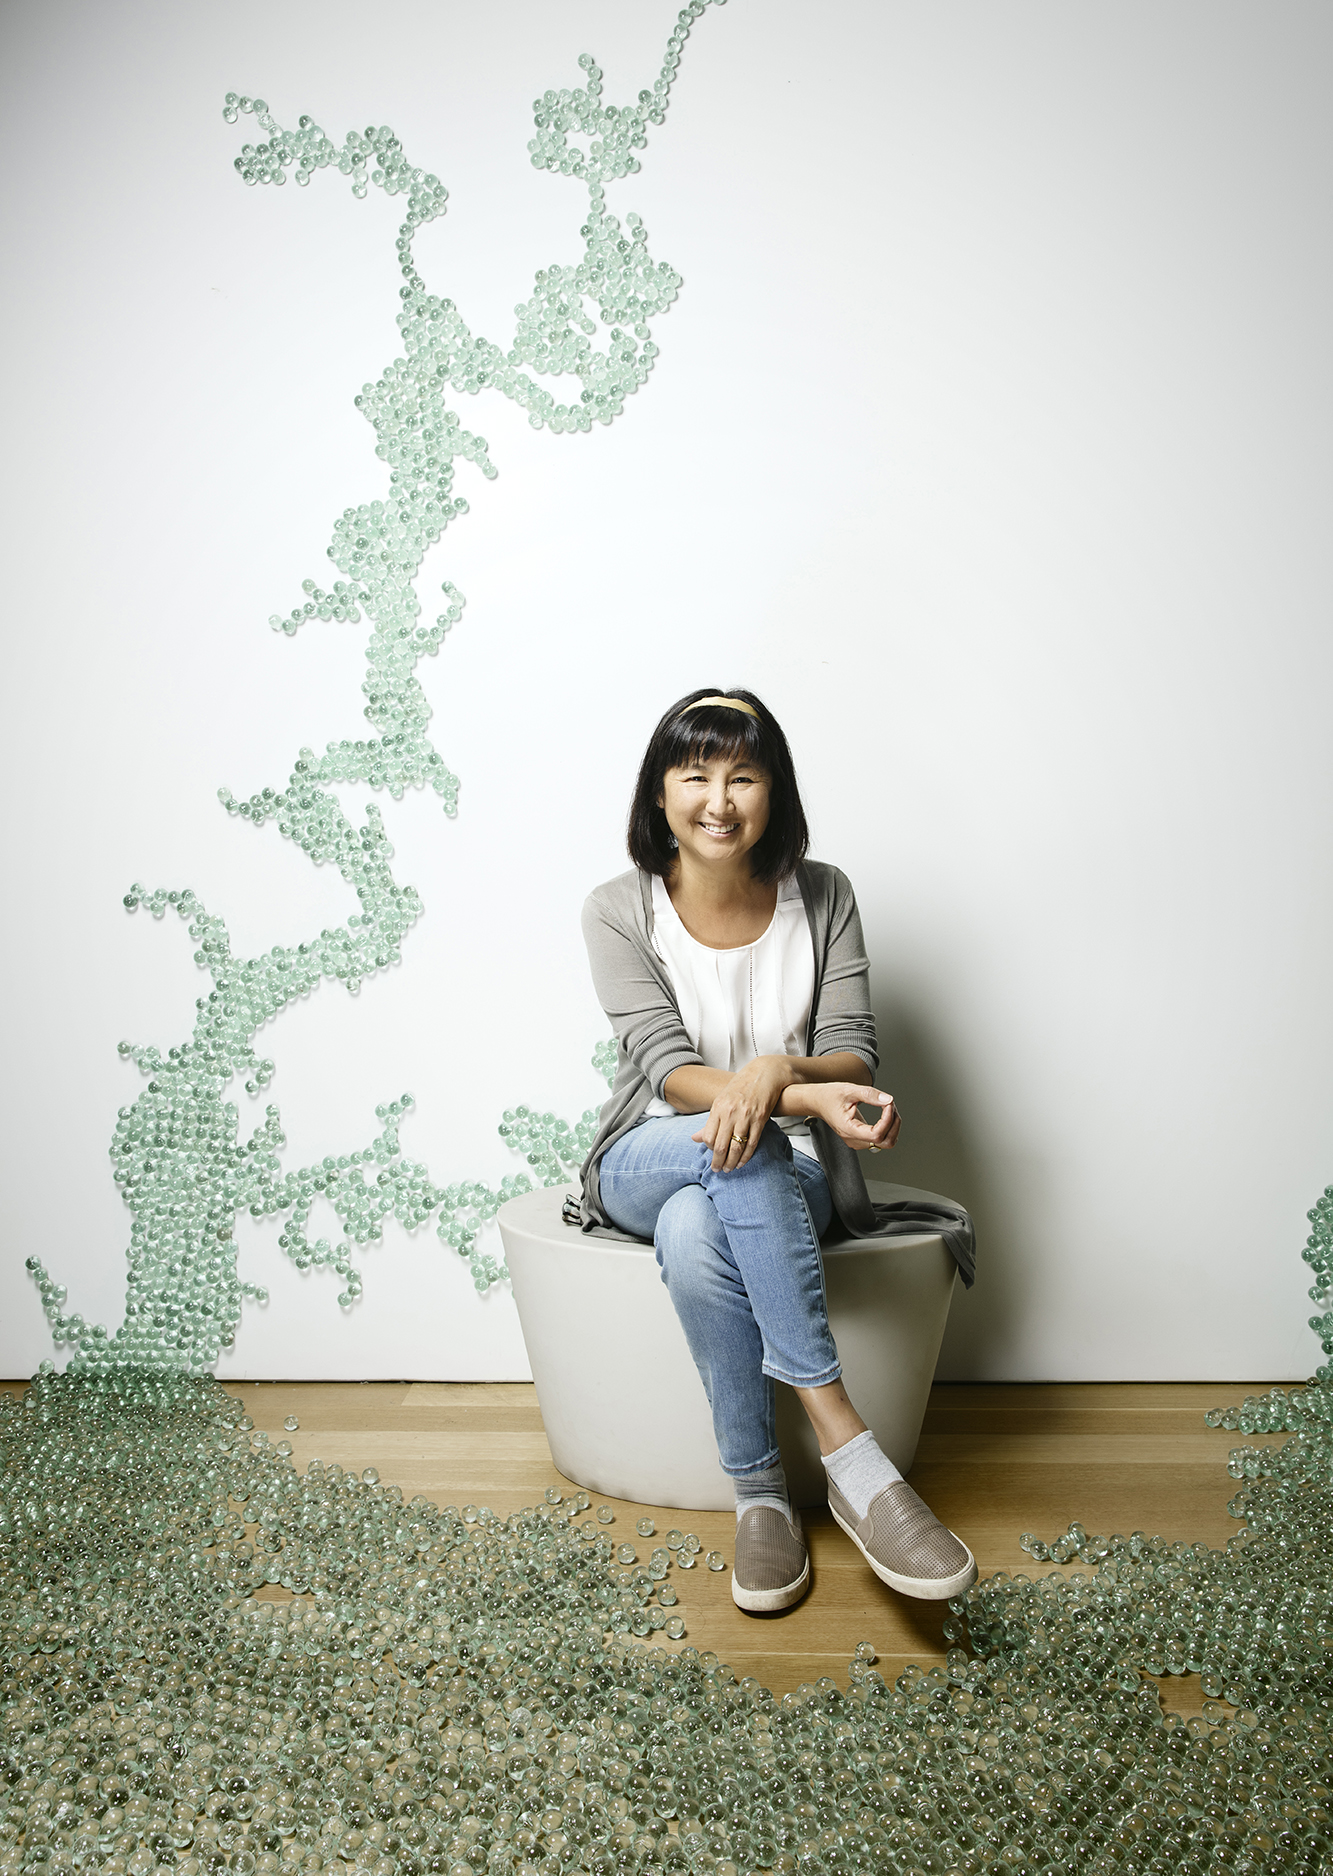 Maya Lin by Matt Furman - www.furmanfoto.com